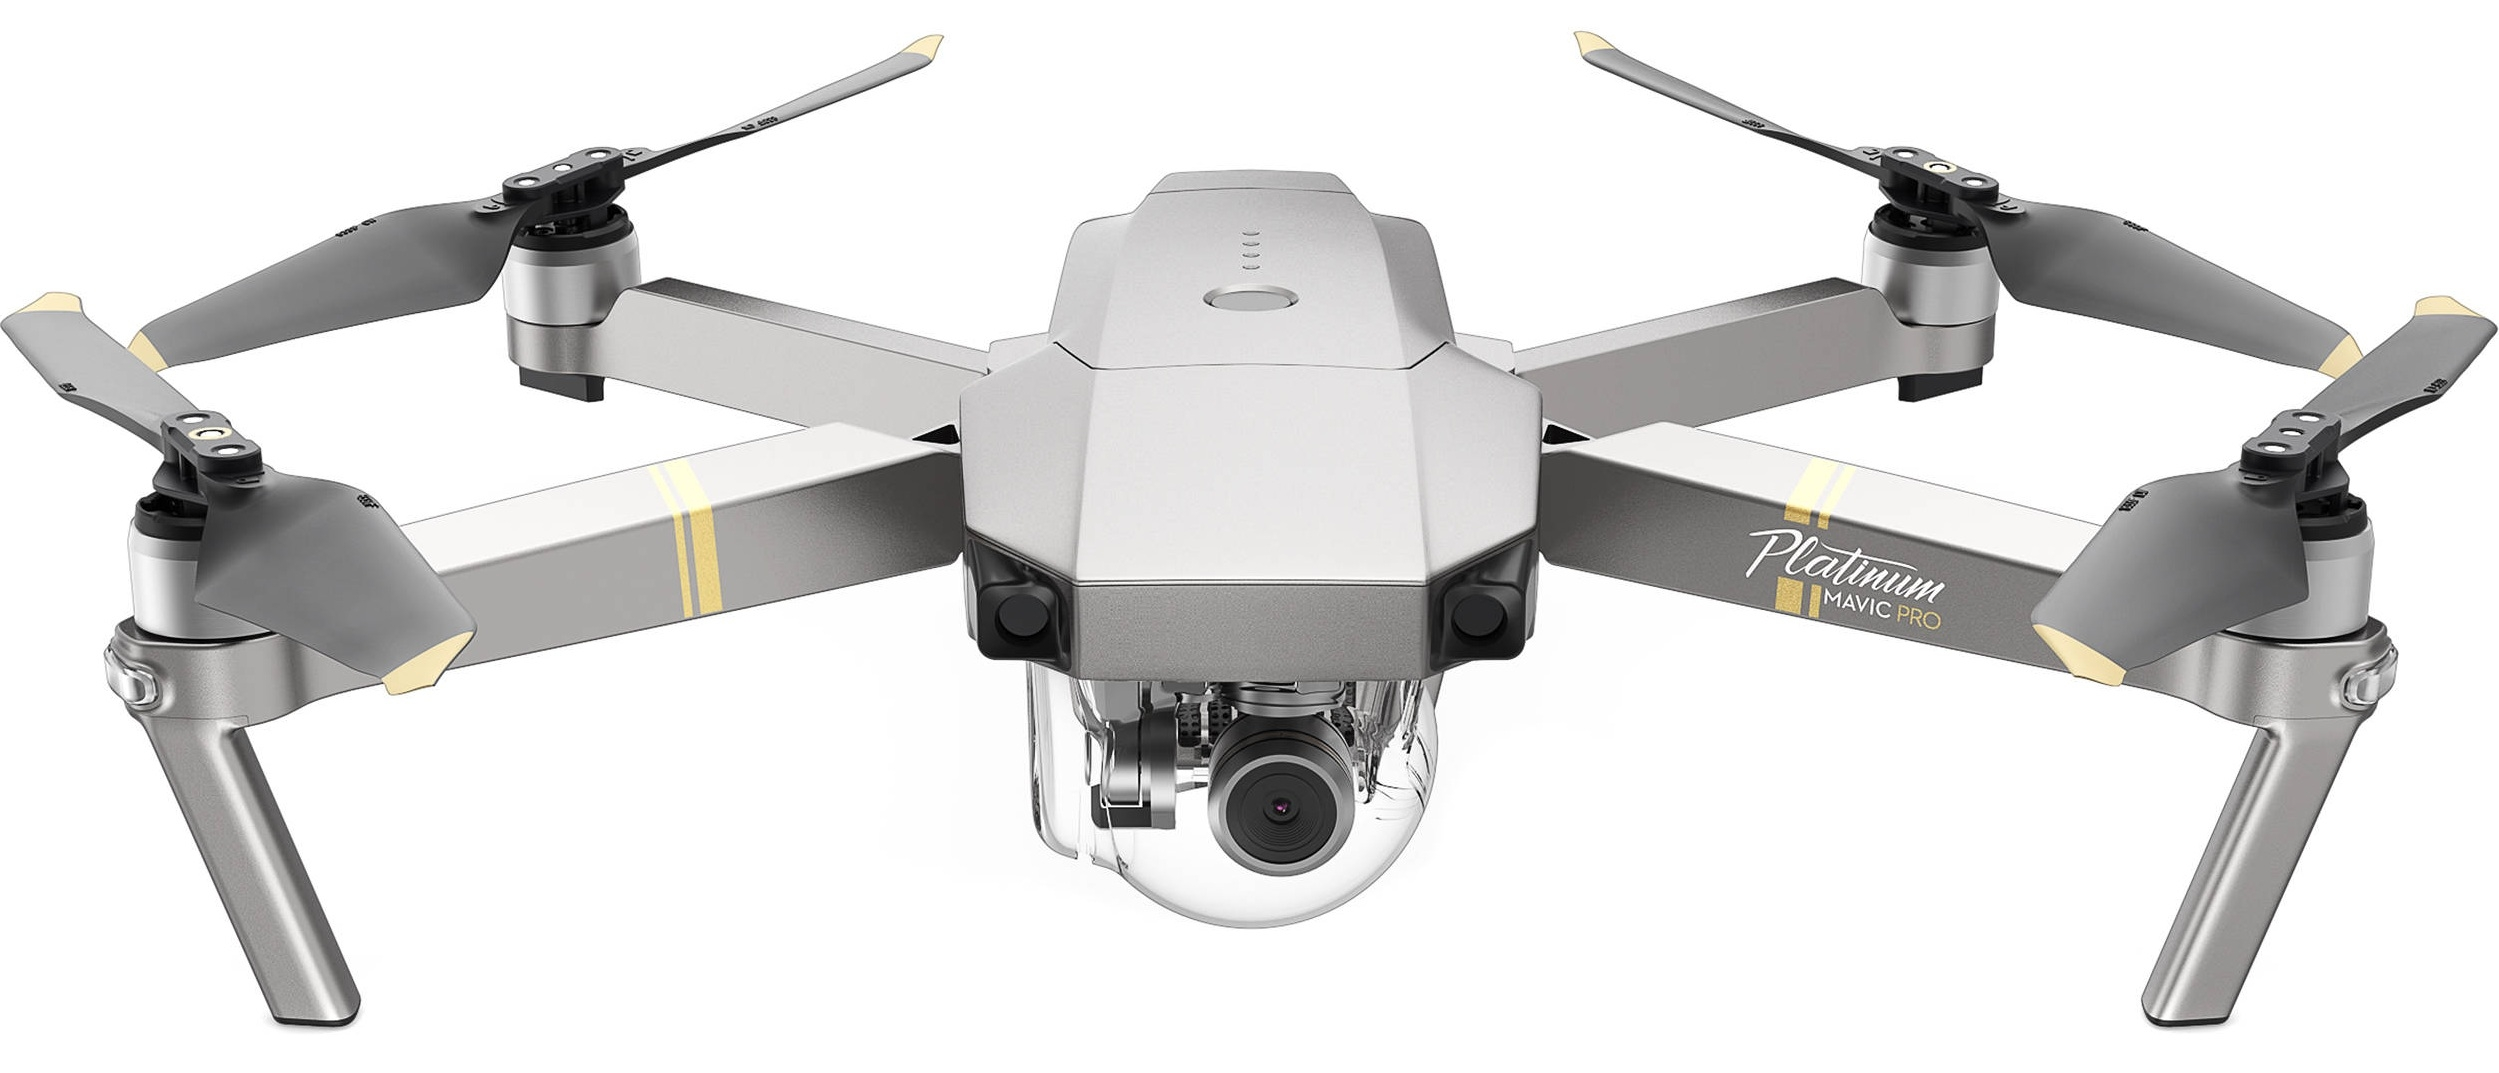 DJI MAVIC PRO Platinum version